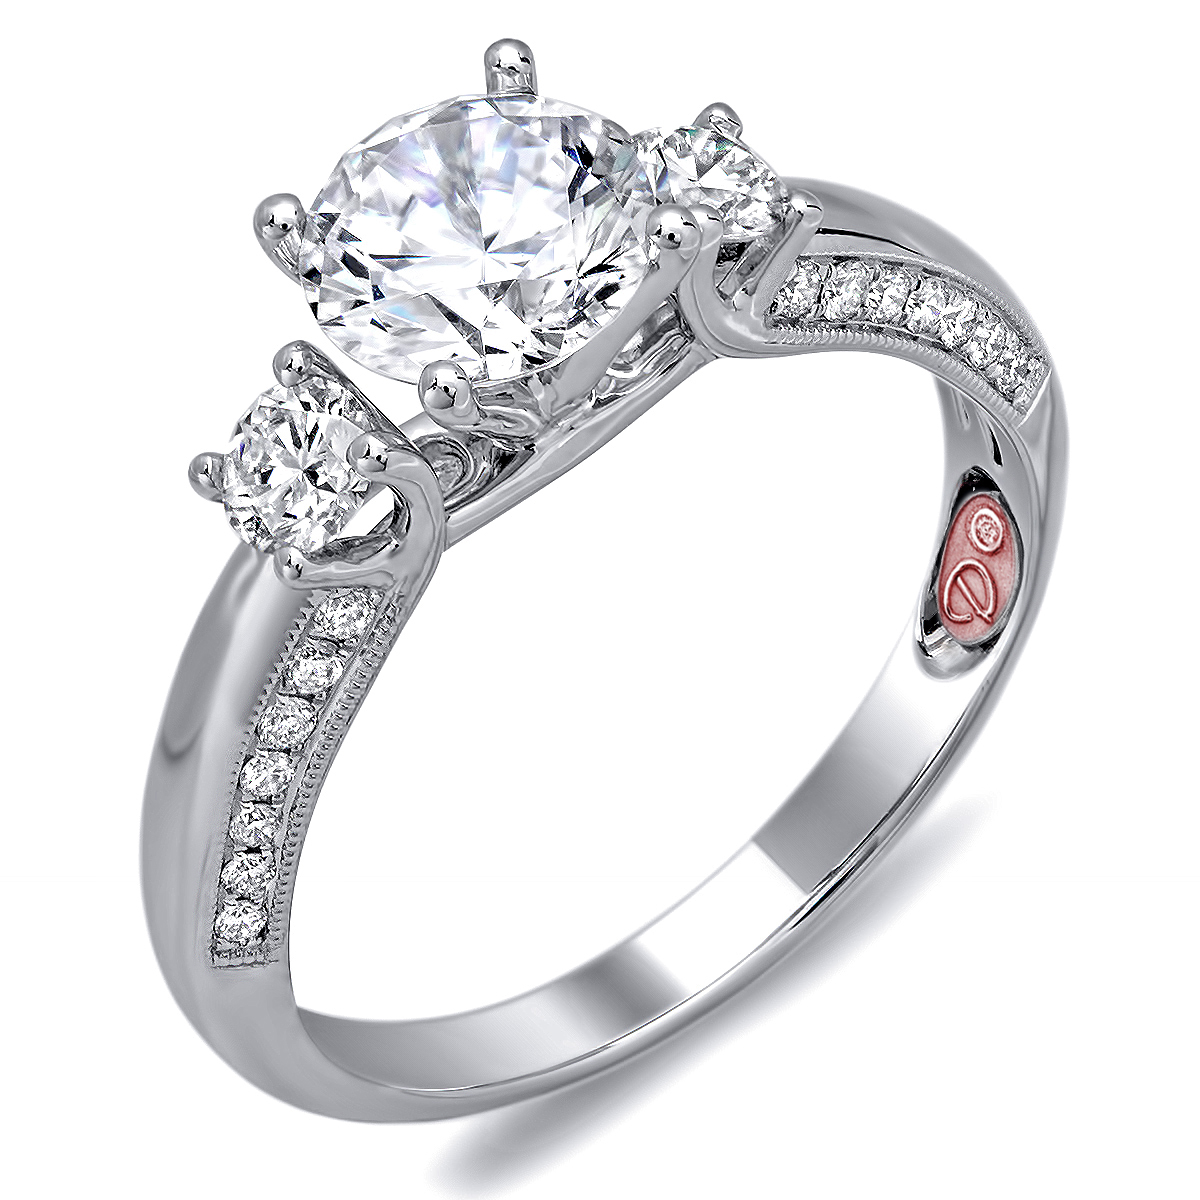 Princess Cut Engagement Ring - DW6093